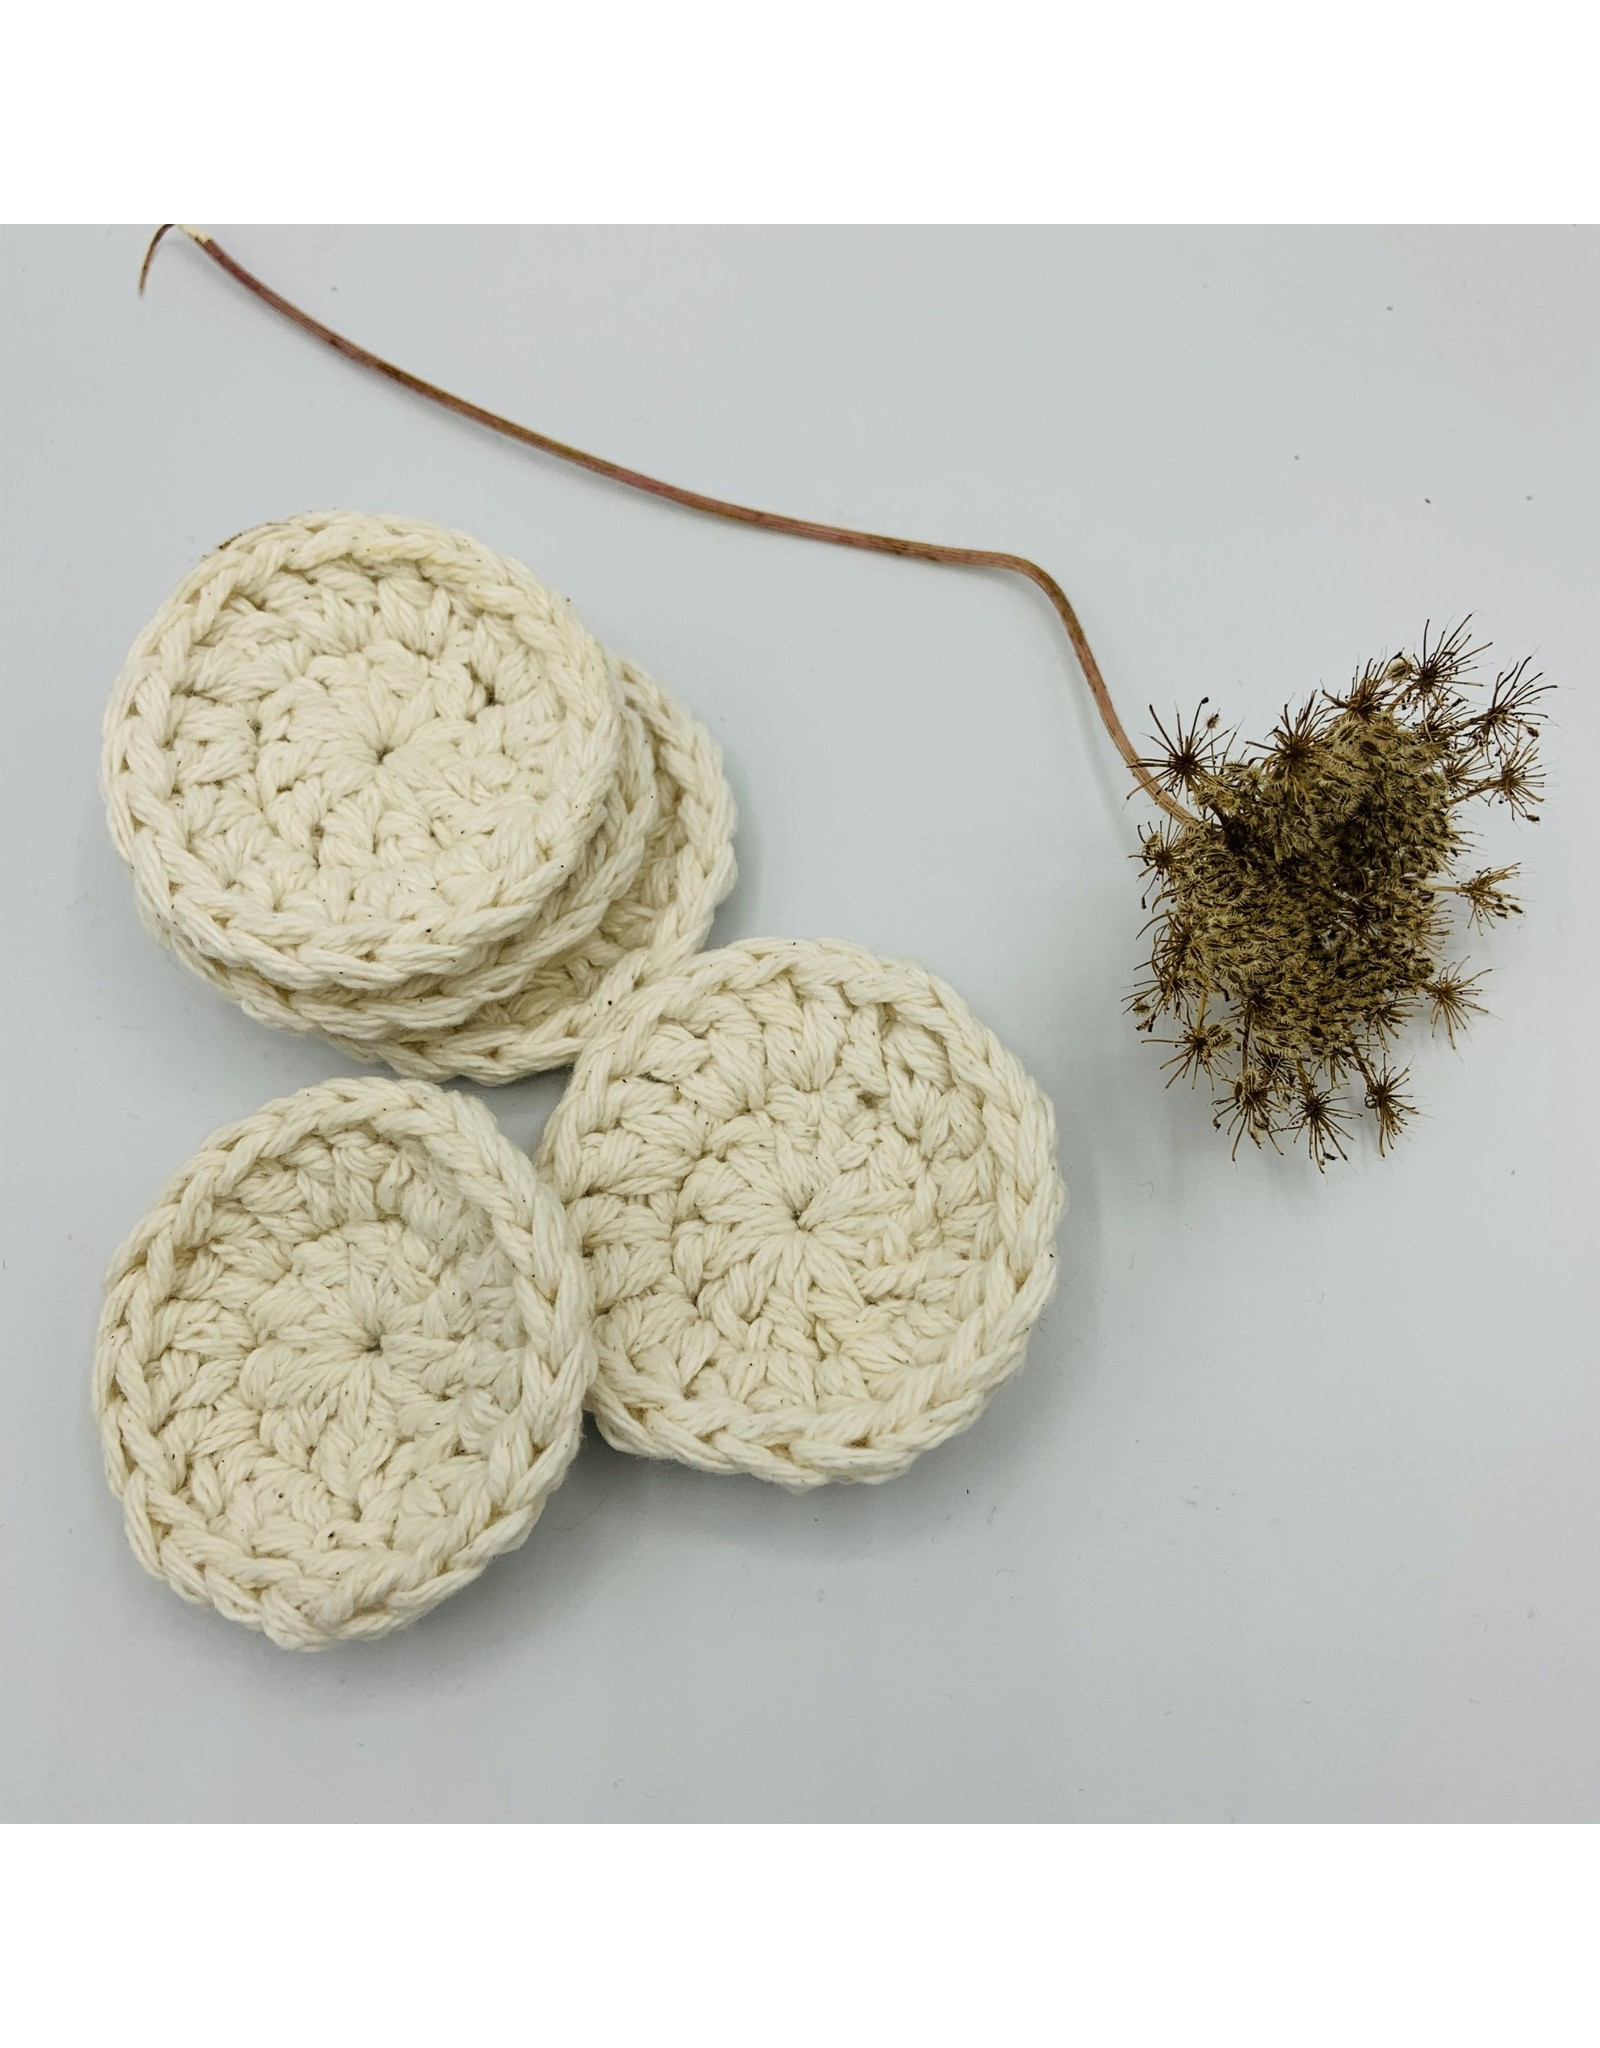 EcoFillosophy Individual Reusable Crochet  Cotton Facial Round  (1 Round)